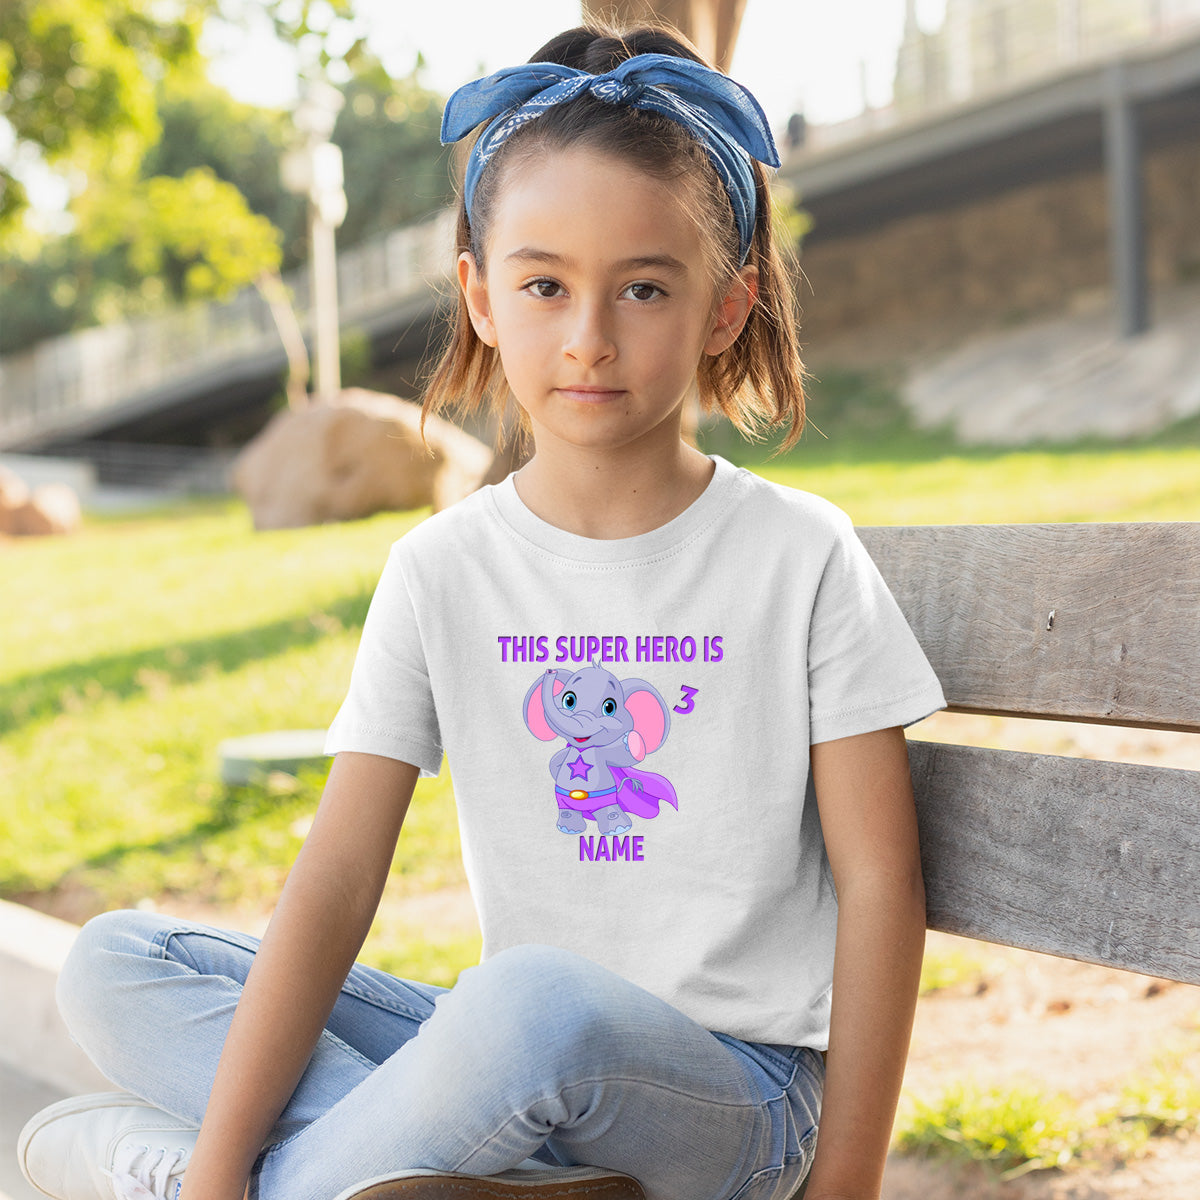 Sprinklecart This Super Hero is 3 Printed Elephant Birthday T Shirt | Customized 3rd Birthday T Shirt Wear